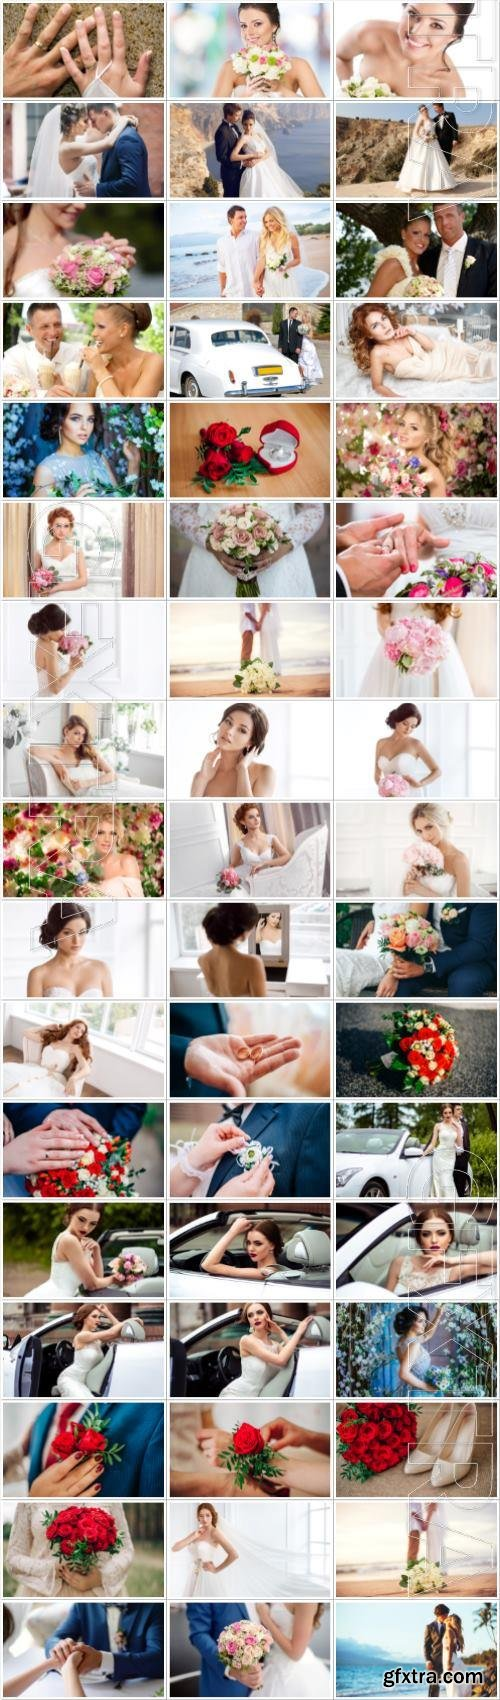 Wedding large collection of stock photos